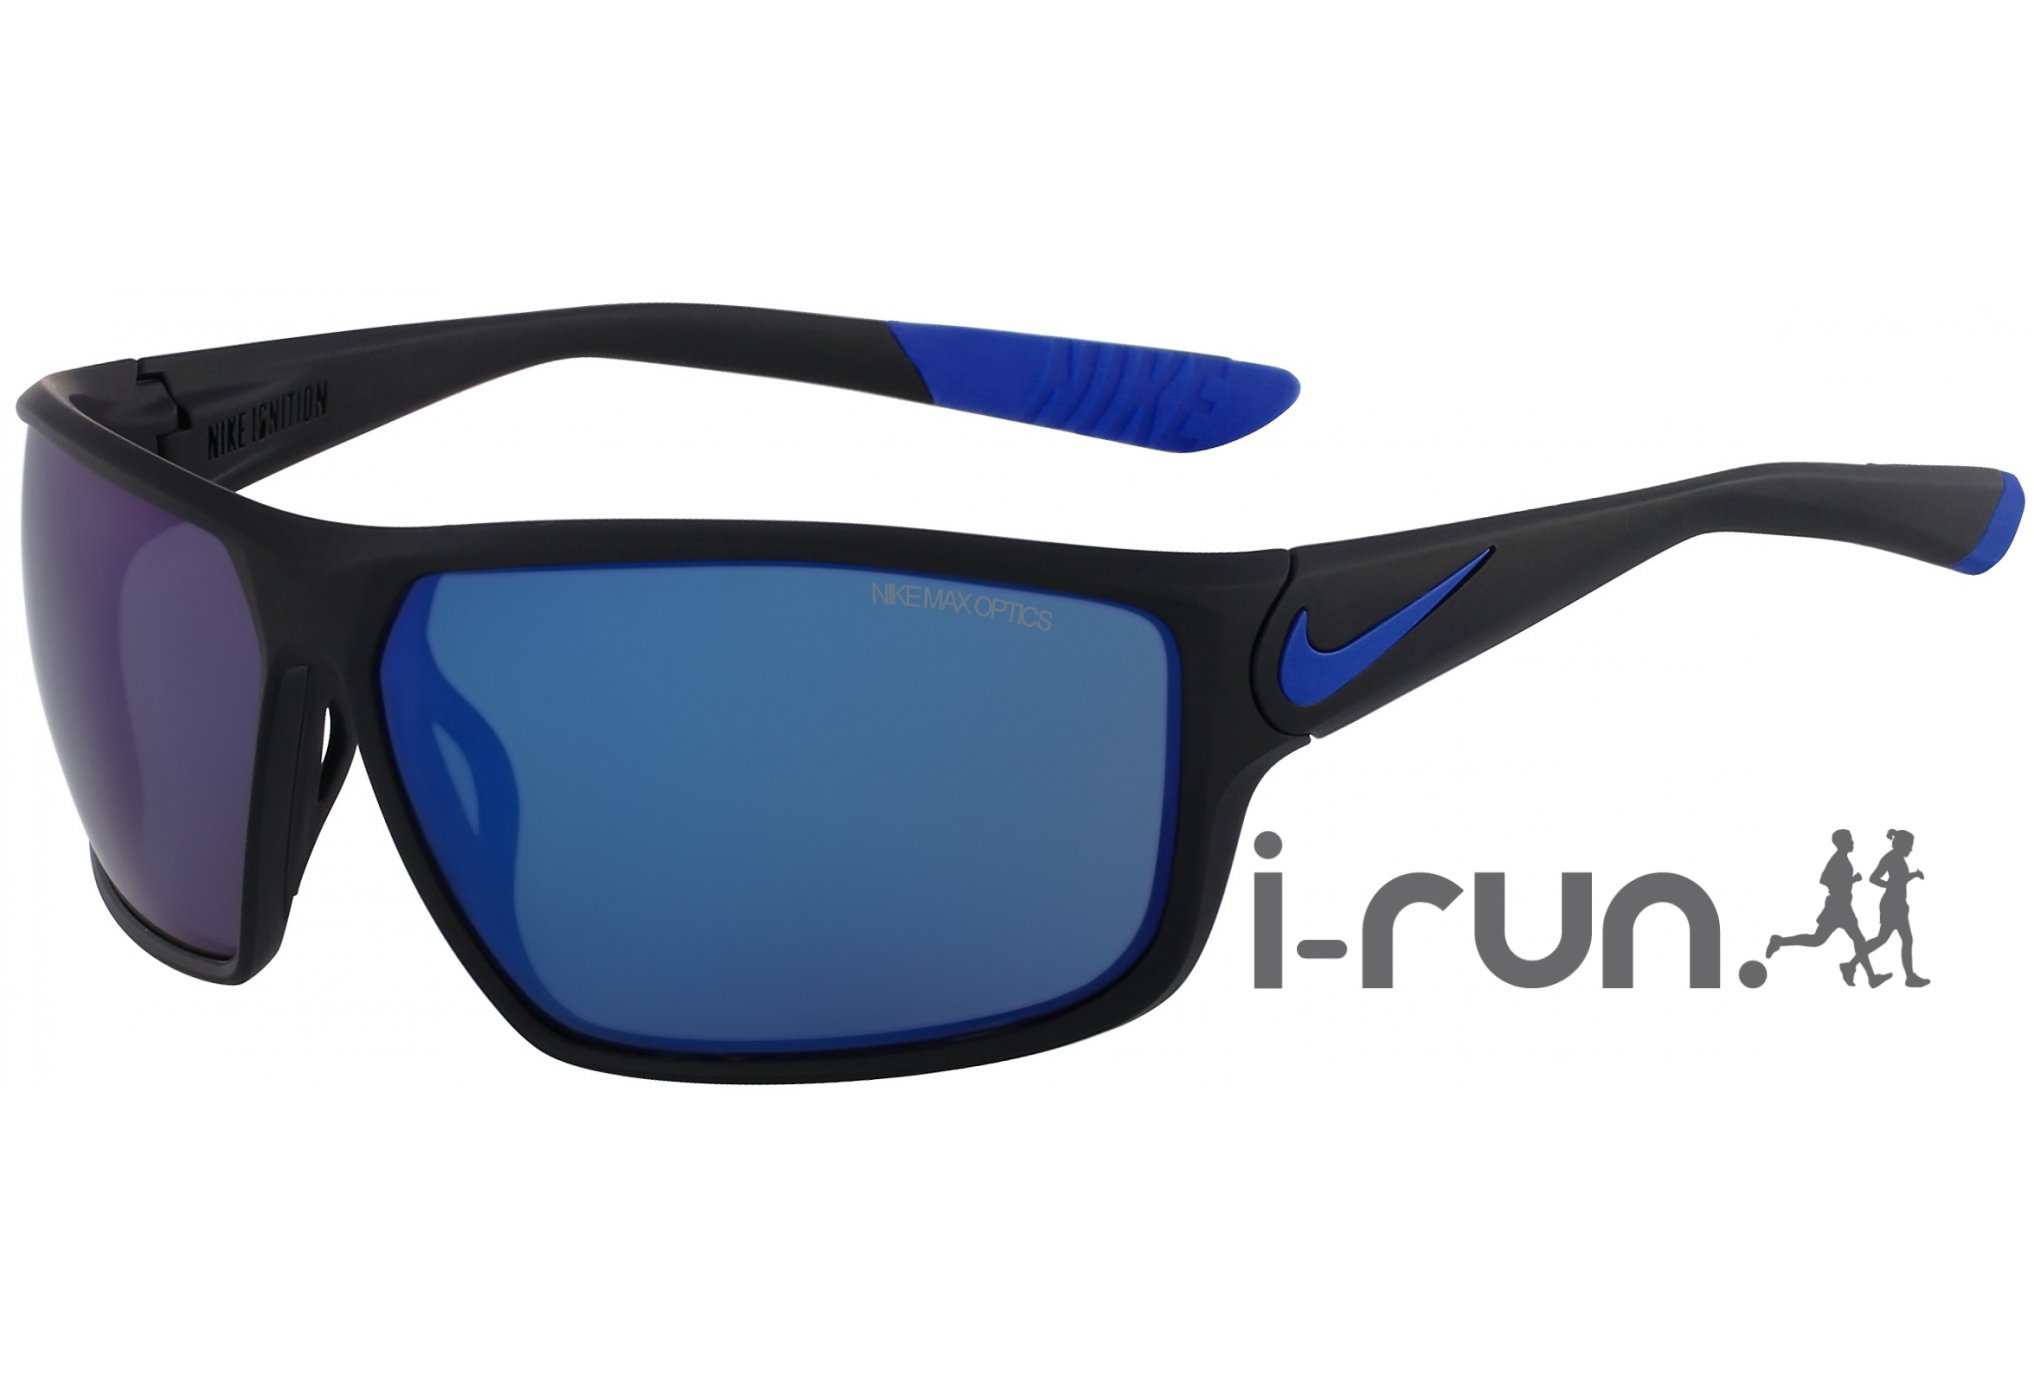 Nike Lunettes Ignition R Lunettes